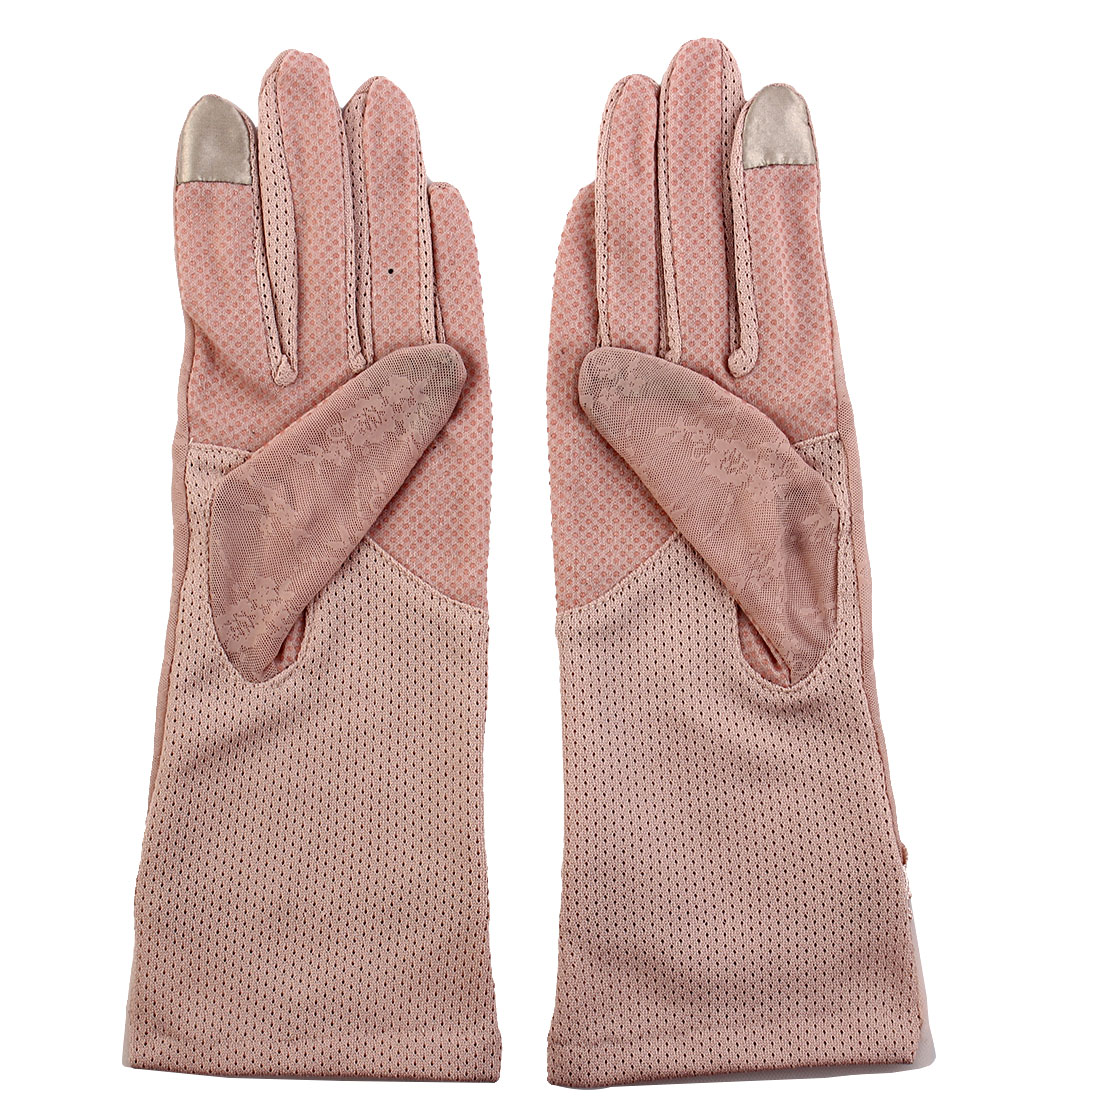 Outdoor Travel Driving Flower Bowknot Decor Full Finger Non-slip Sun Resistant Gloves Pink Pair for Women